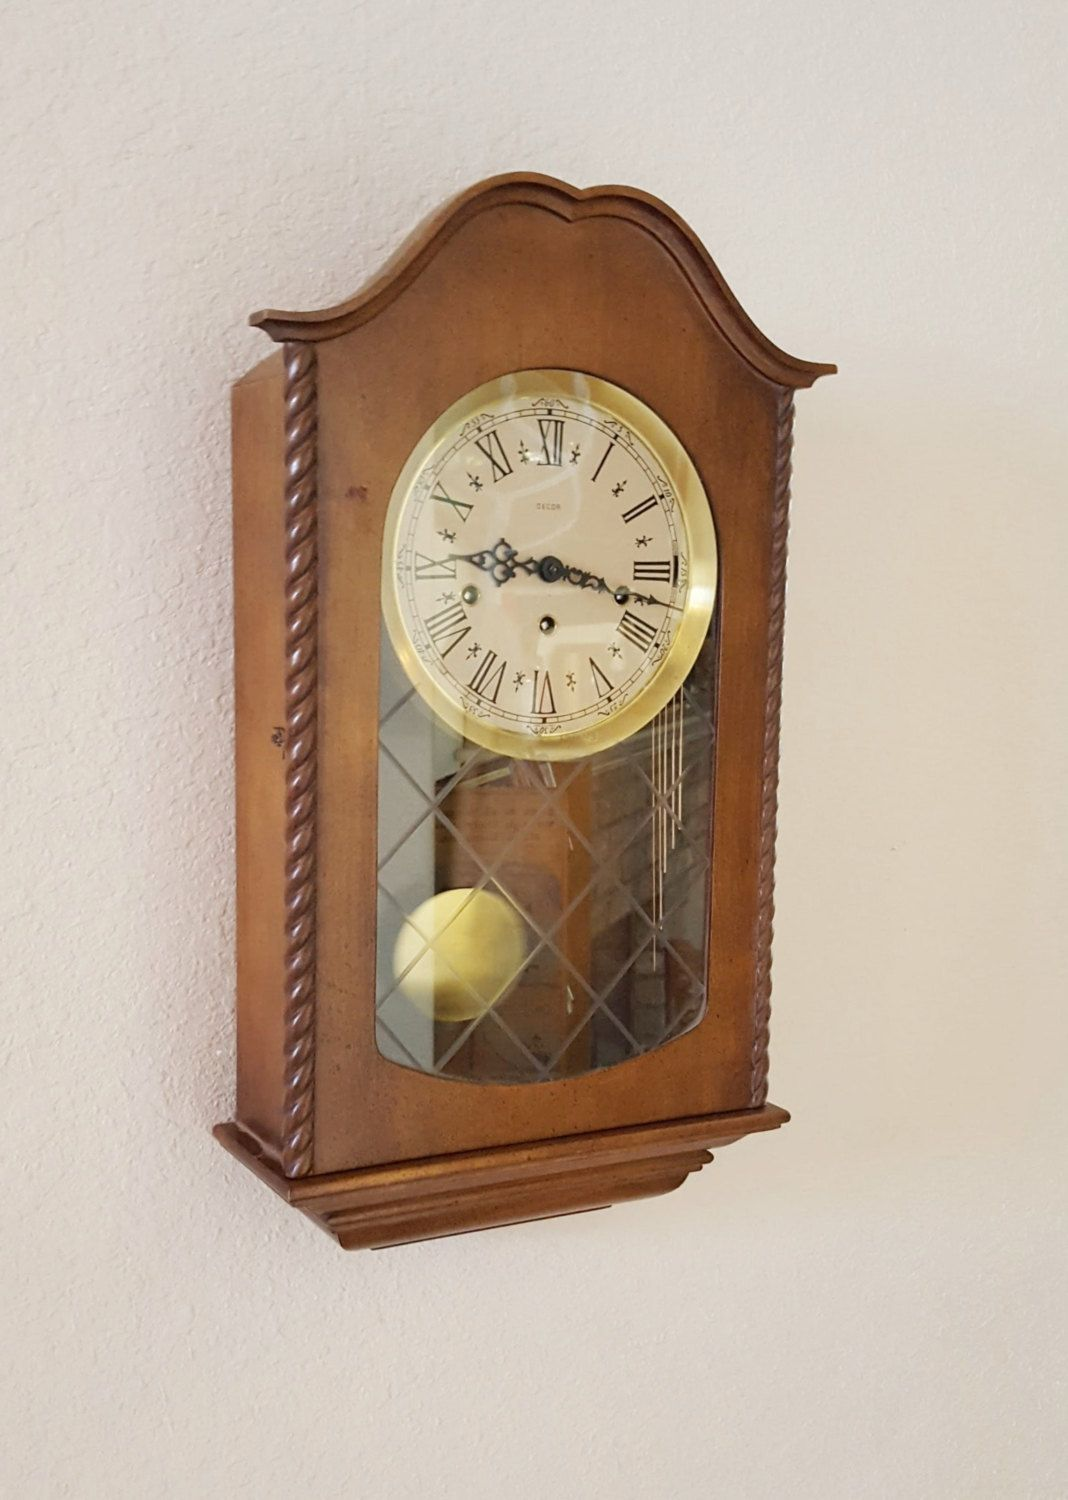 Restored Vintage / Antique Imported (Germany) Heirloom Quality Decor Brand Westminster Chiming Wall Clock  Warranty by TheClockGuys on Etsy